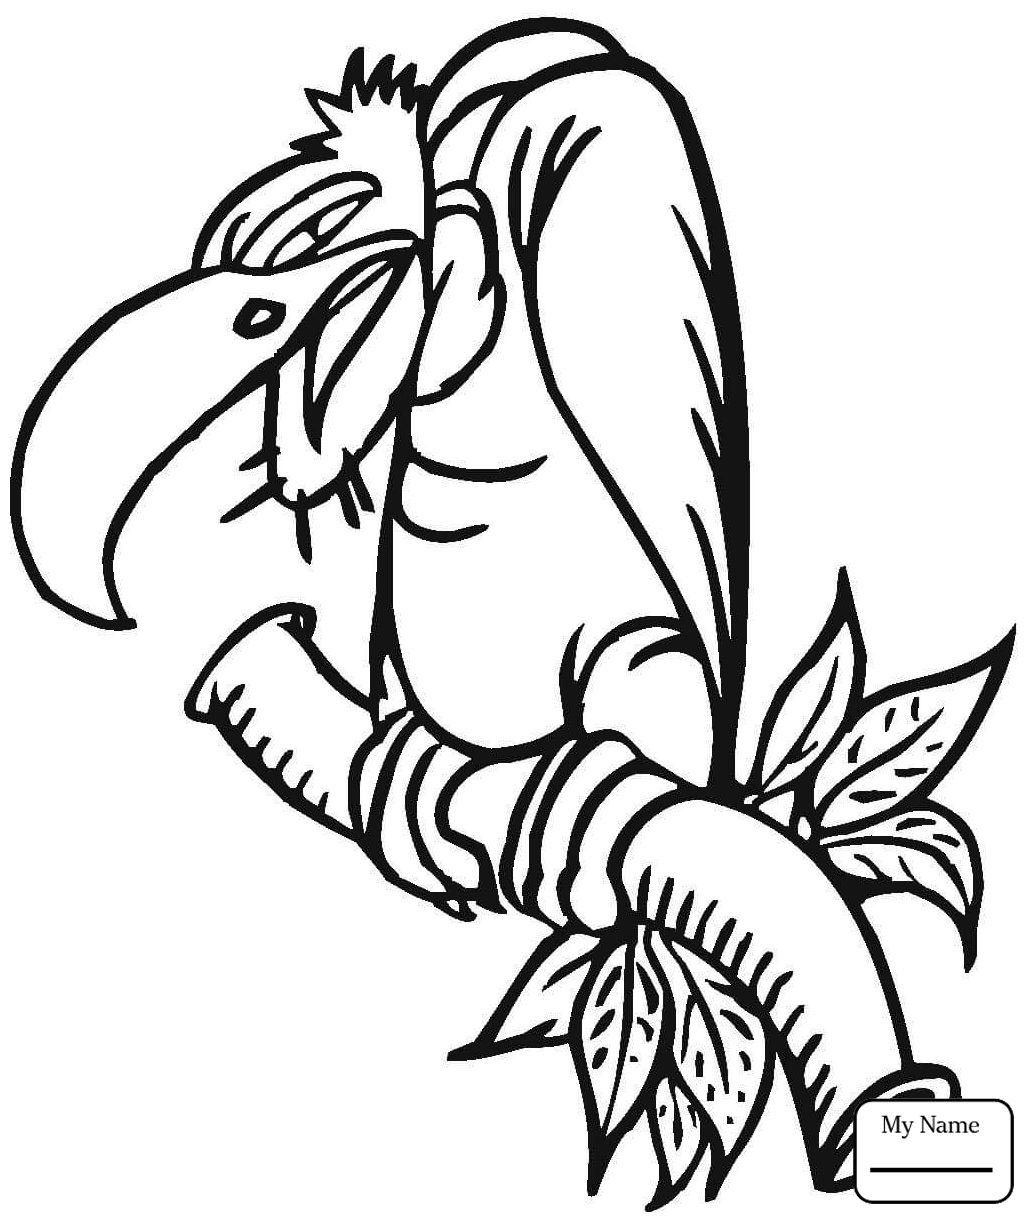 vulture images to color vulture coloring pages preschool and kindergarten images to vulture color 1 1